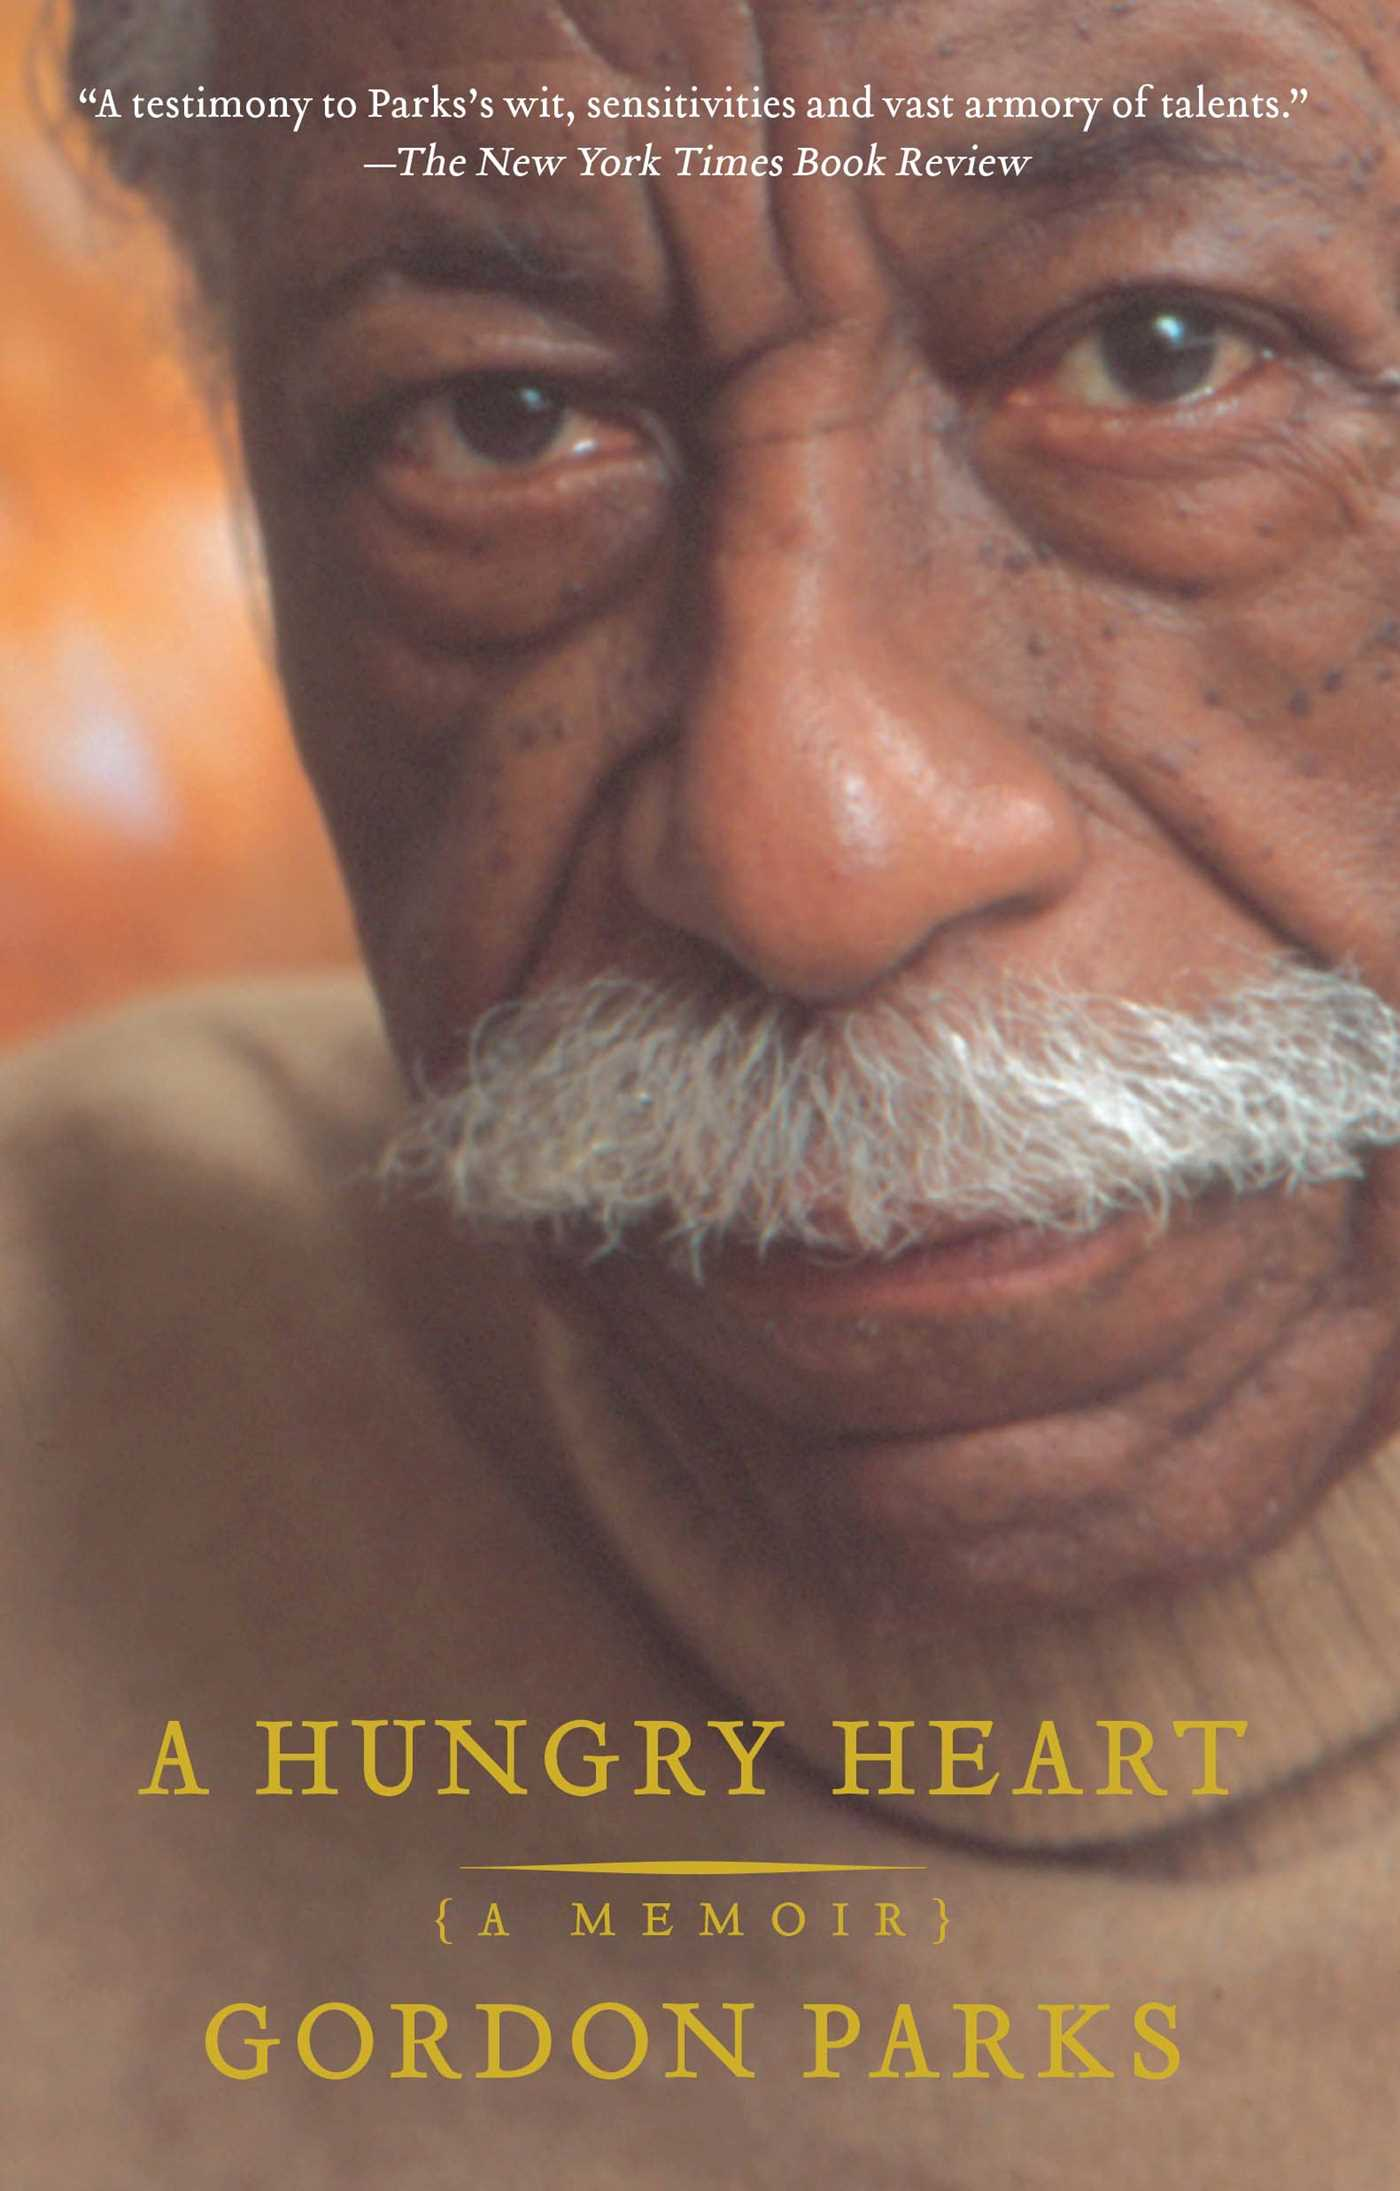 A-hungry-heart-9780743269032_hr